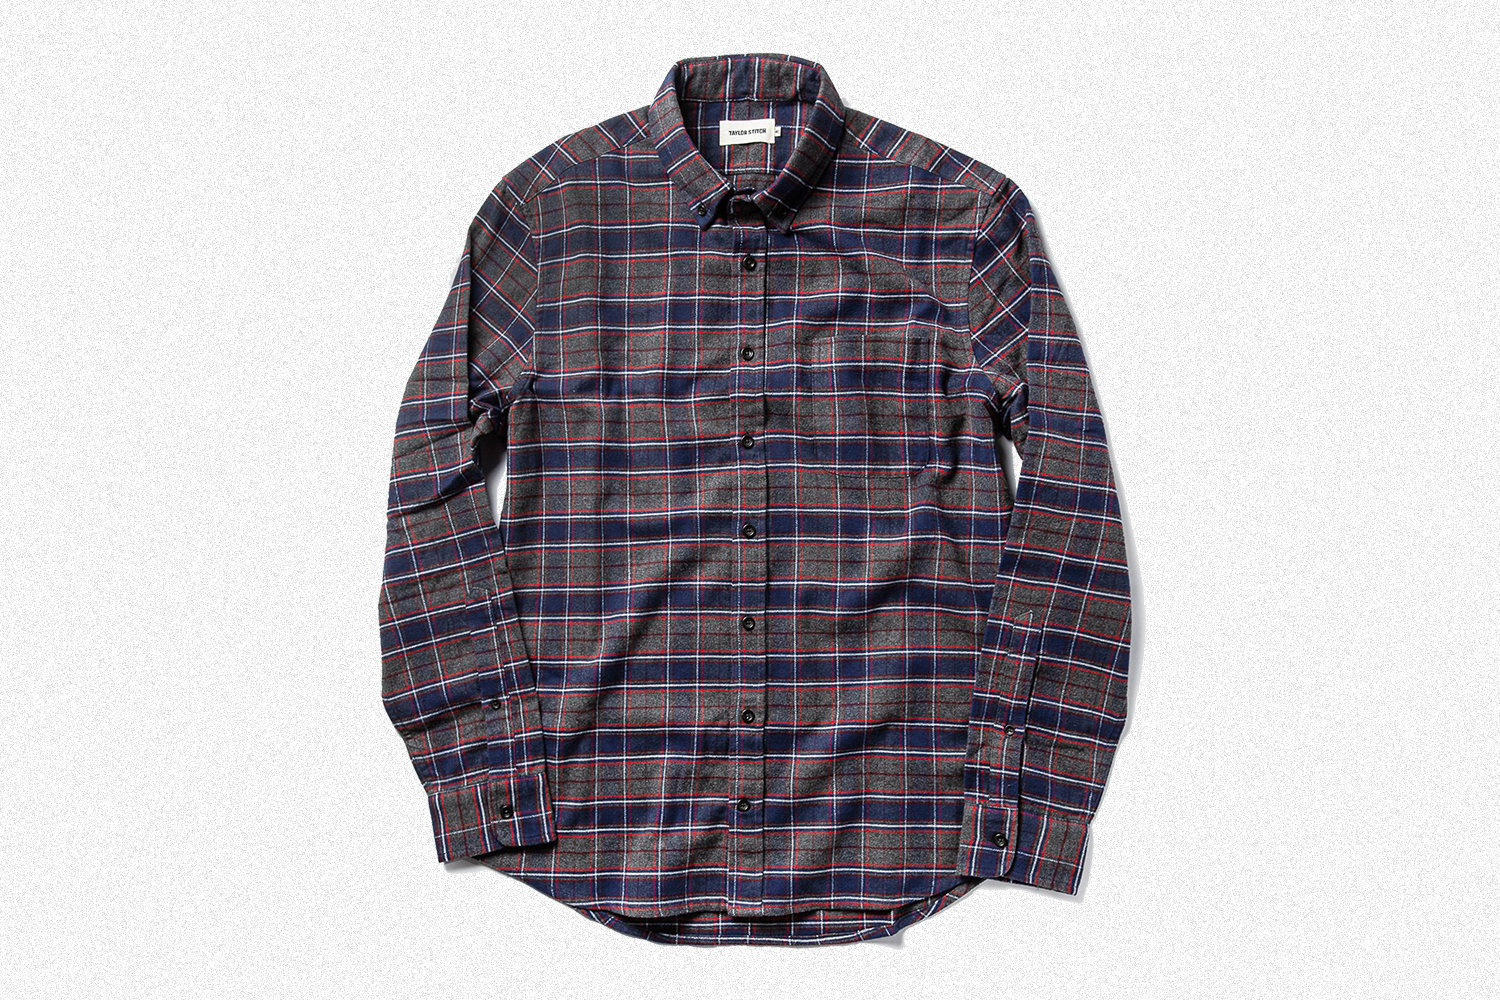 The Jack Shirt from Taylor Stitch